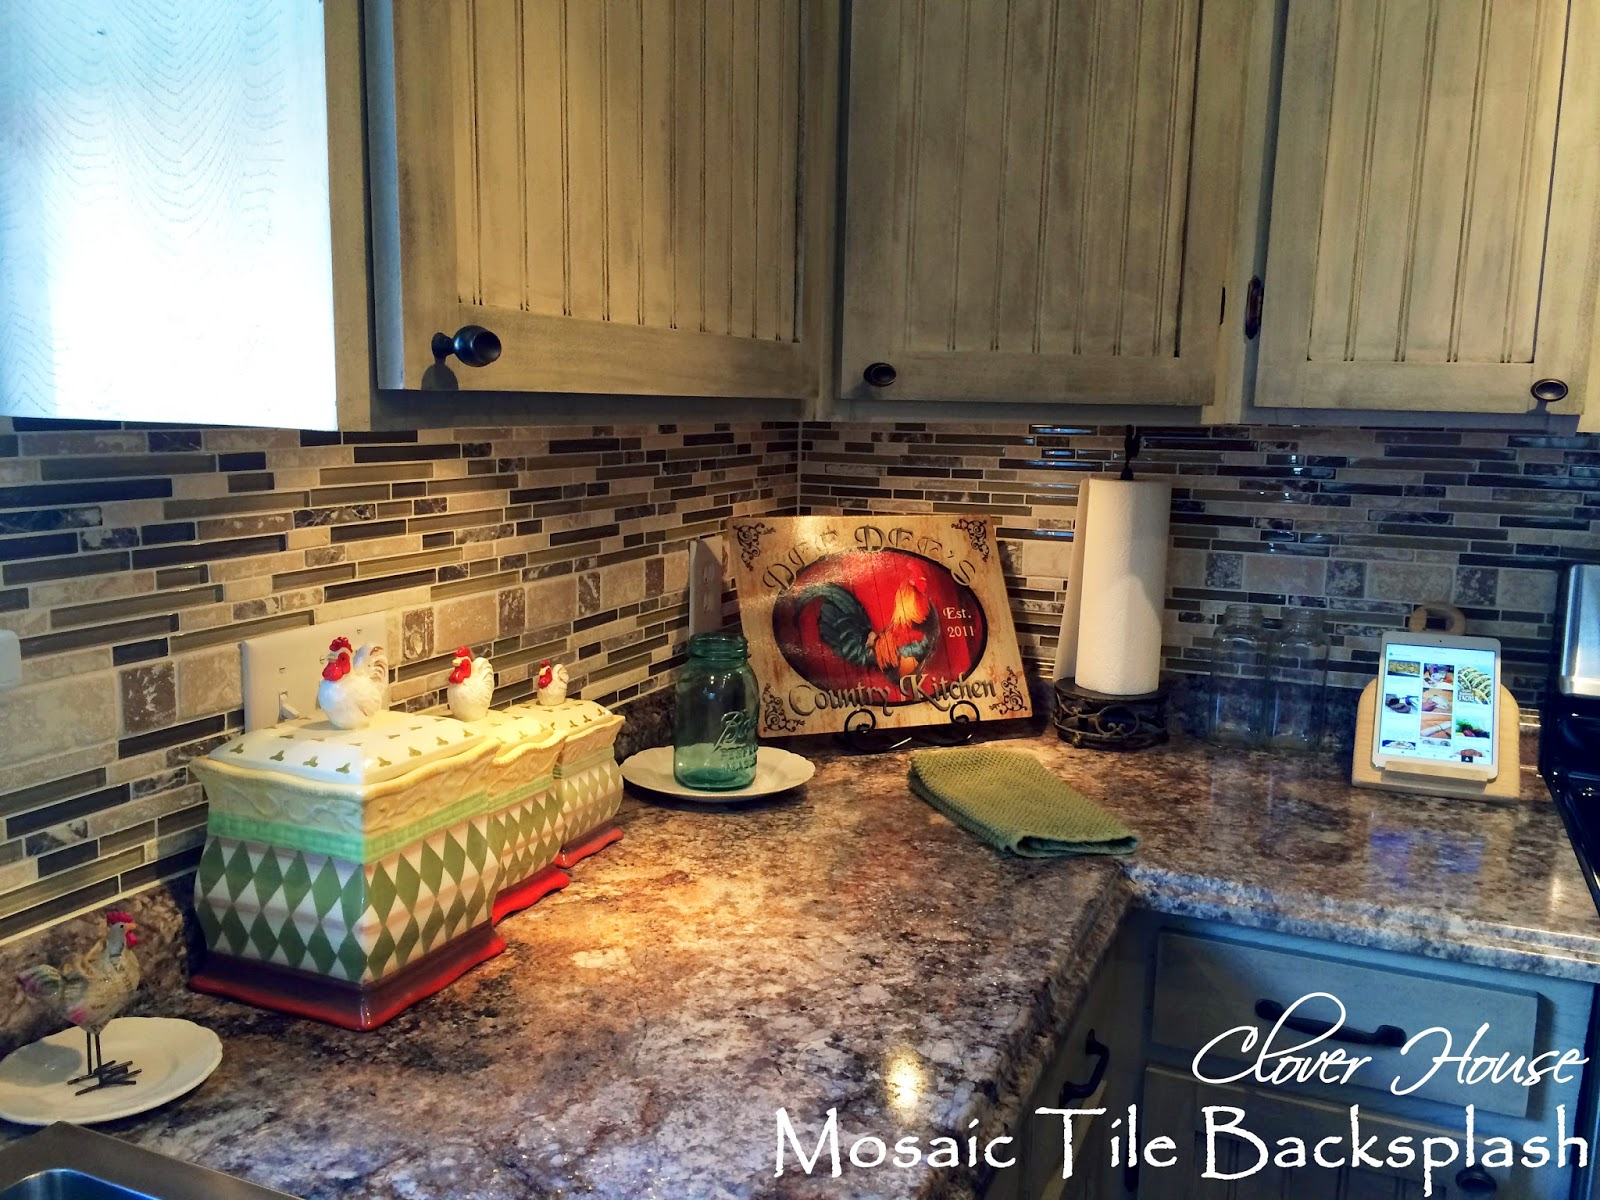 - Clover House: DIY Mosaic Tile Backsplash